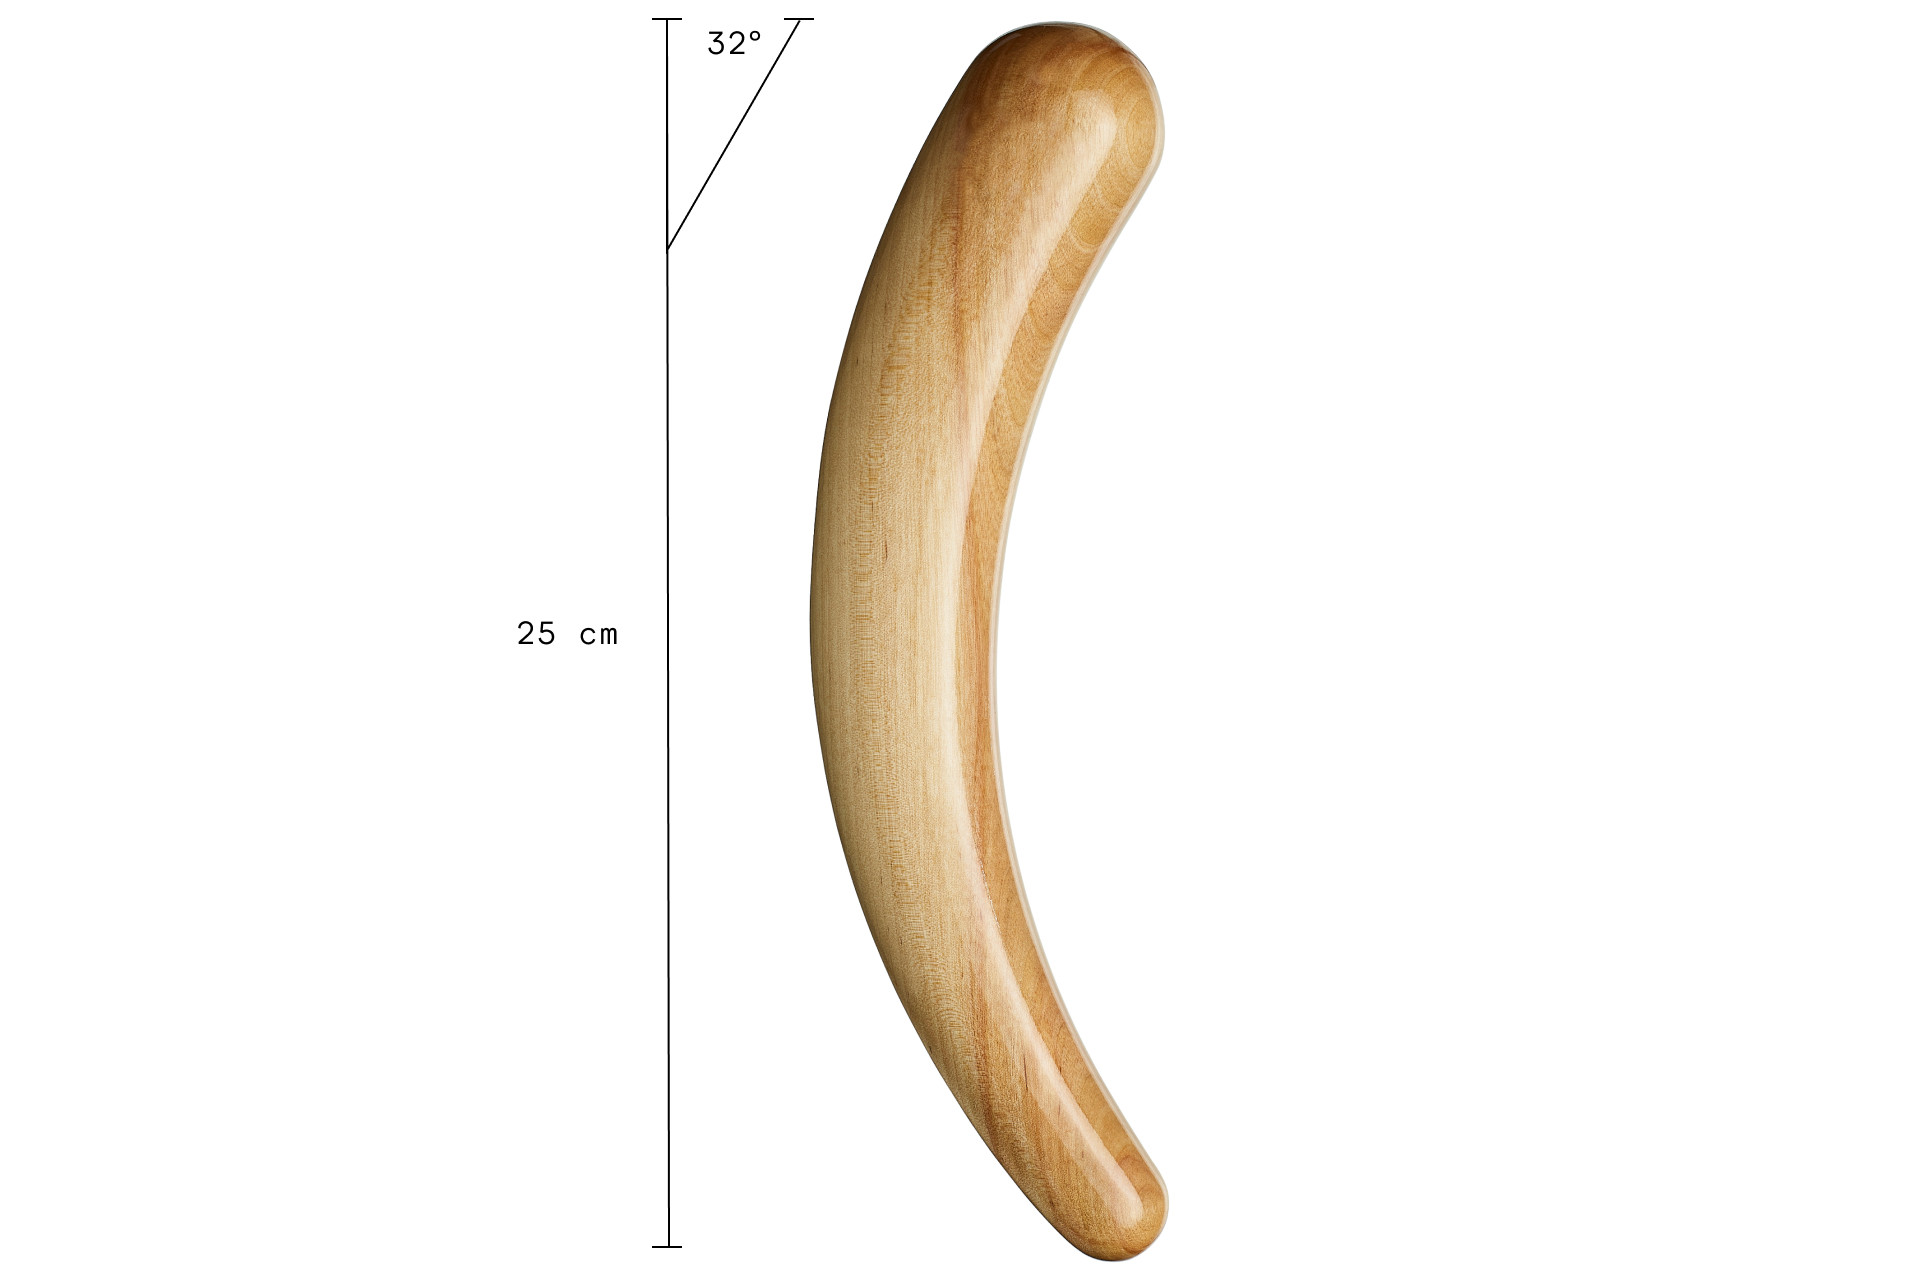 Teatiamo Dildos are approximately 30 cm long from longer arch